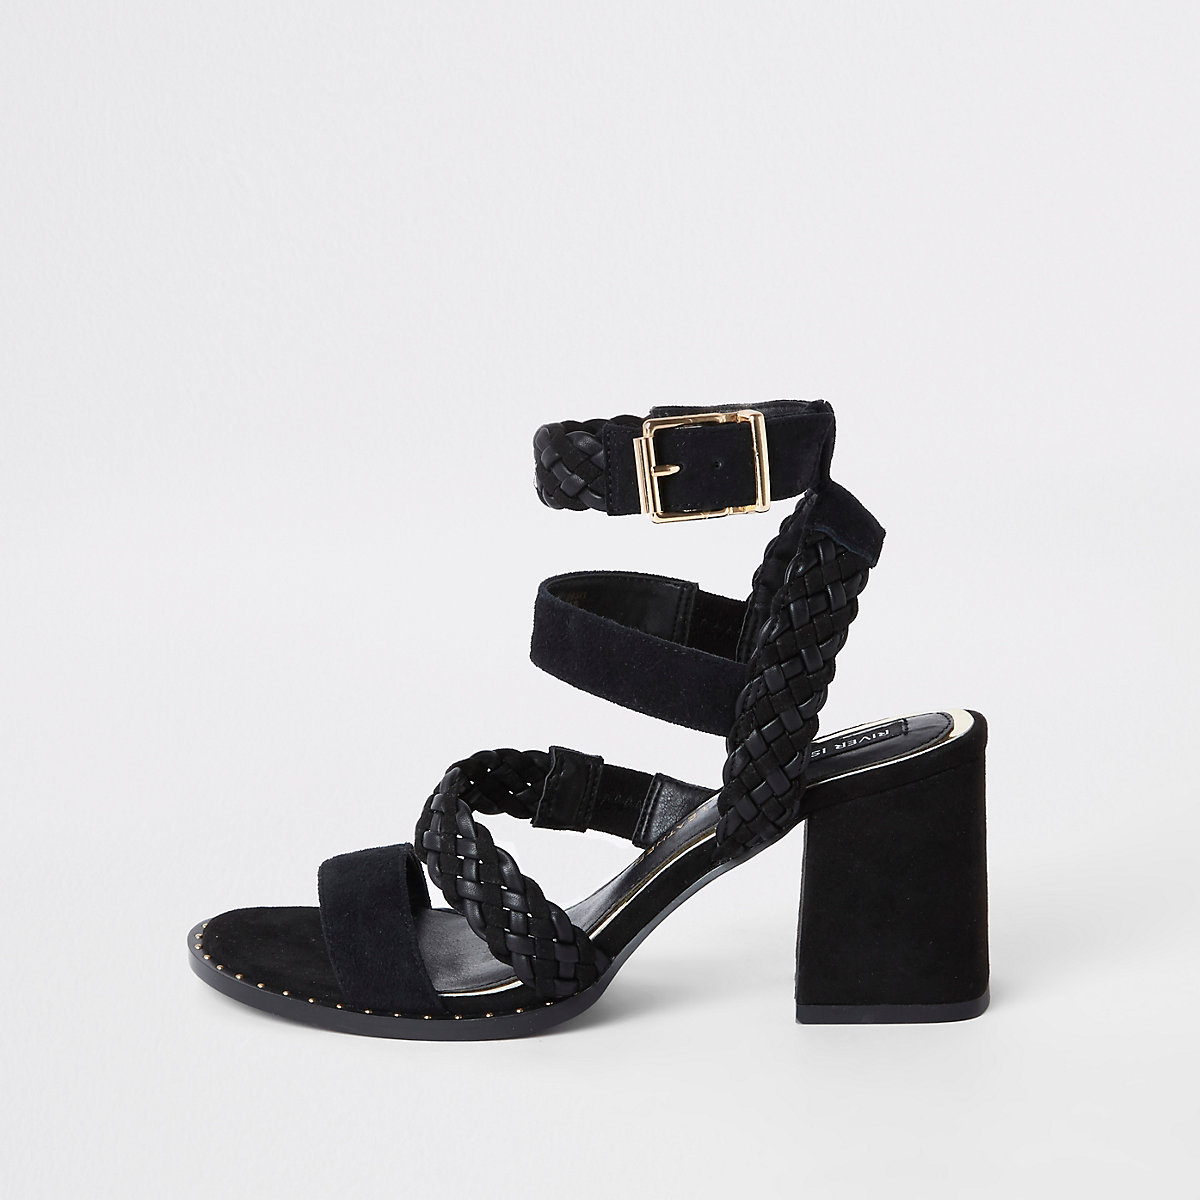 Black leather strappy block heel sandals